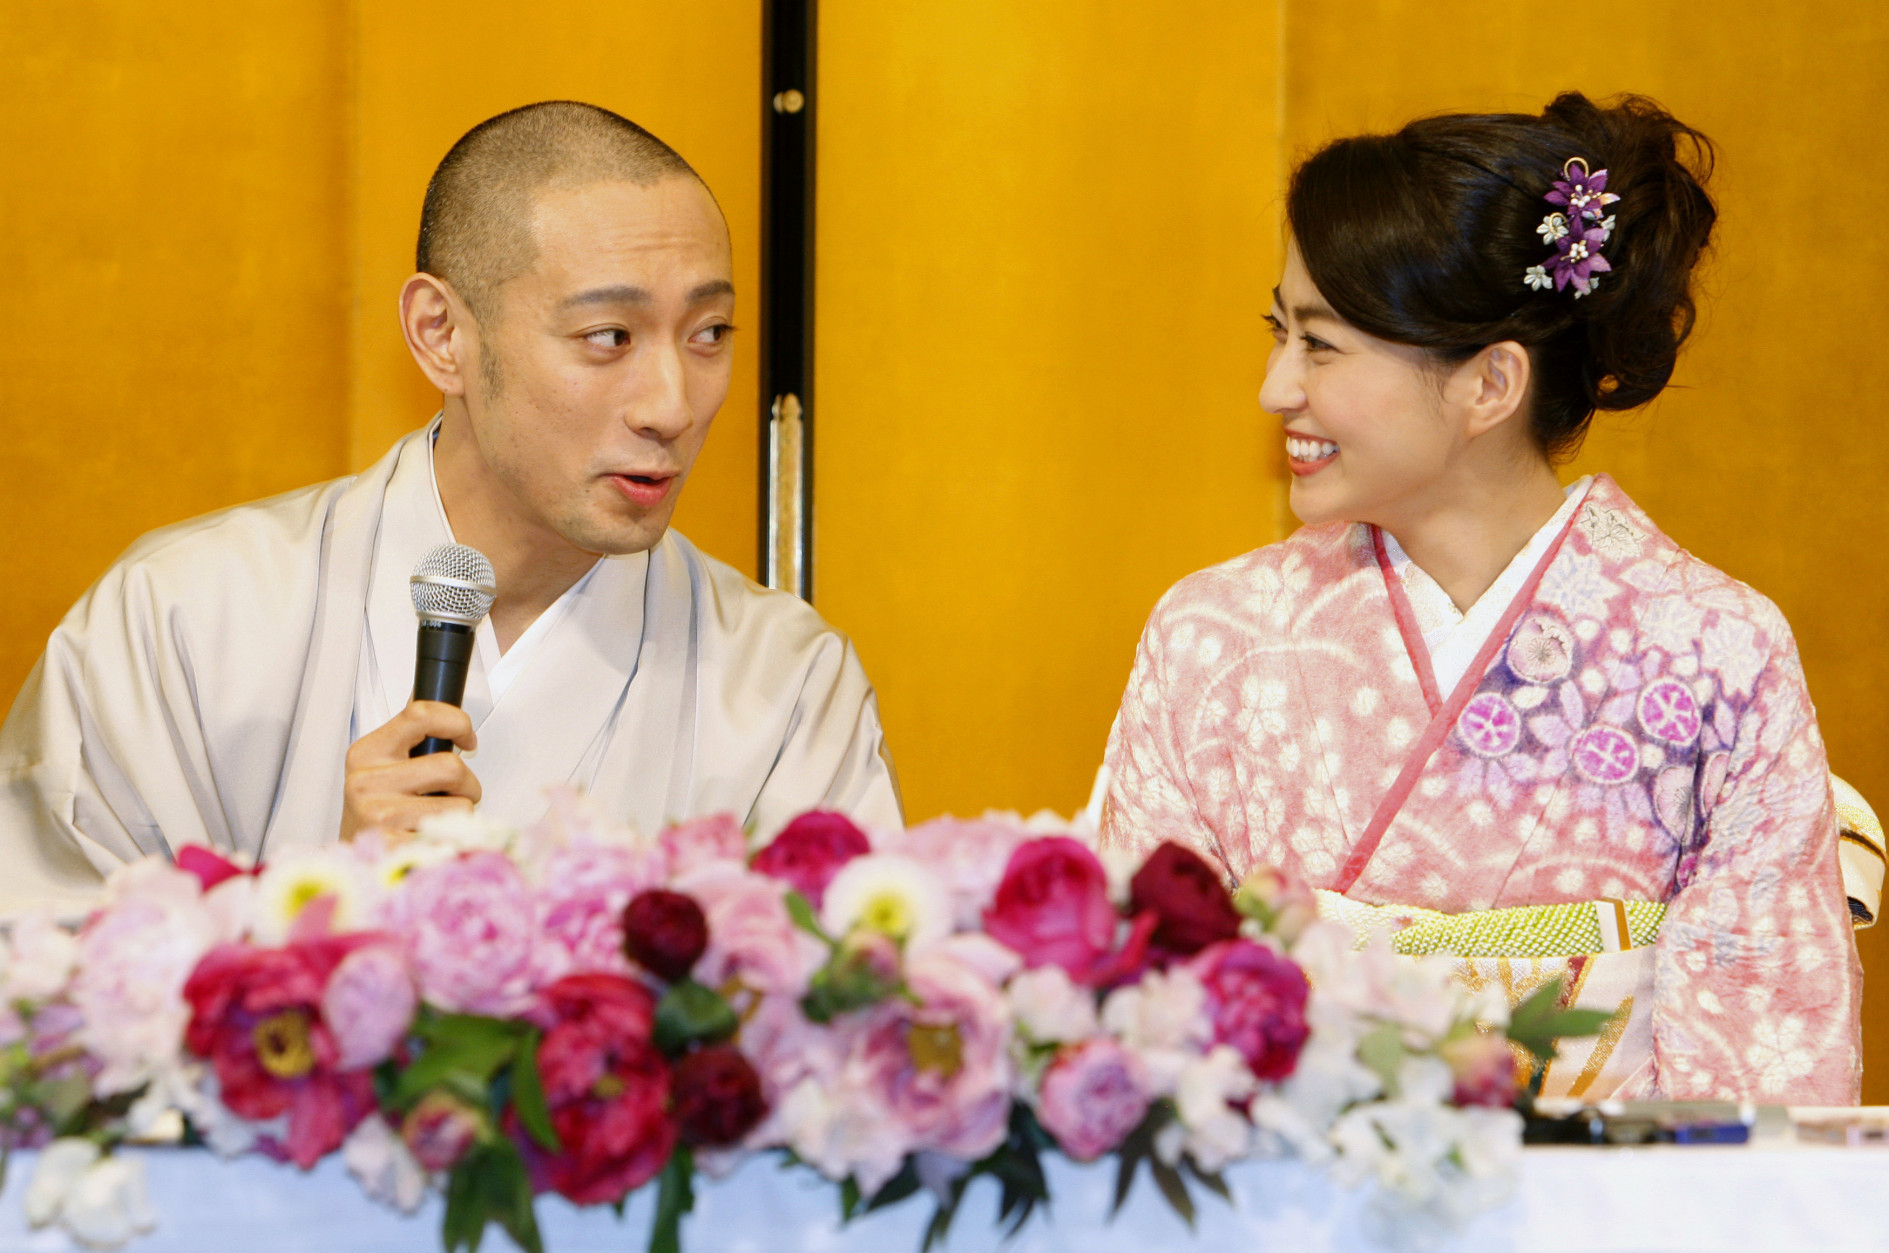 TV personality Mao Kobayashi succumbs to cancer at 34